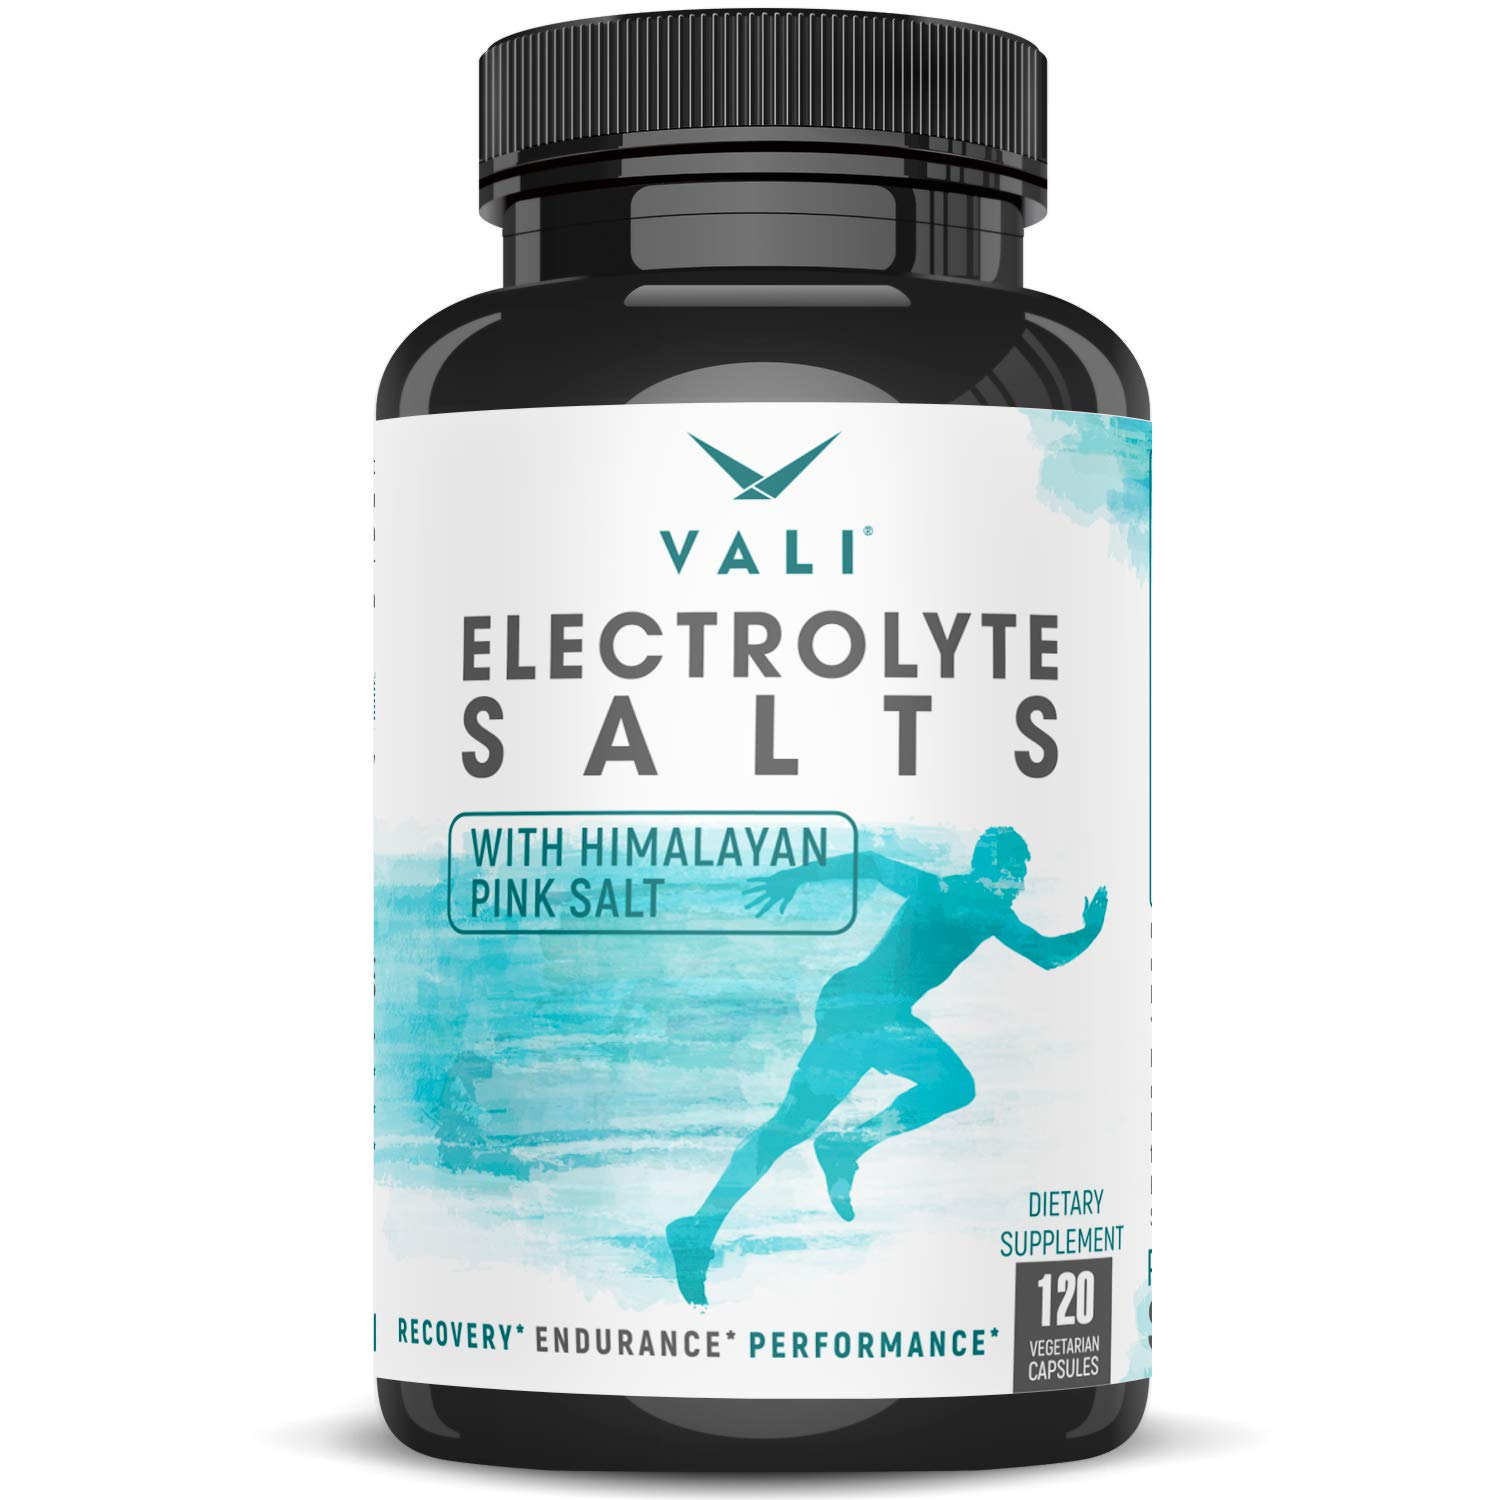 Electrolyte Salts Rapid Oral Rehydration Replacement Pills, Hydration Minerals for Active Fluid Recovery Health - Sodium, Potassium, Magnesium, Calcium, Vitamin D3, Himalayan Pink Salt, 120 Capsules by VALI